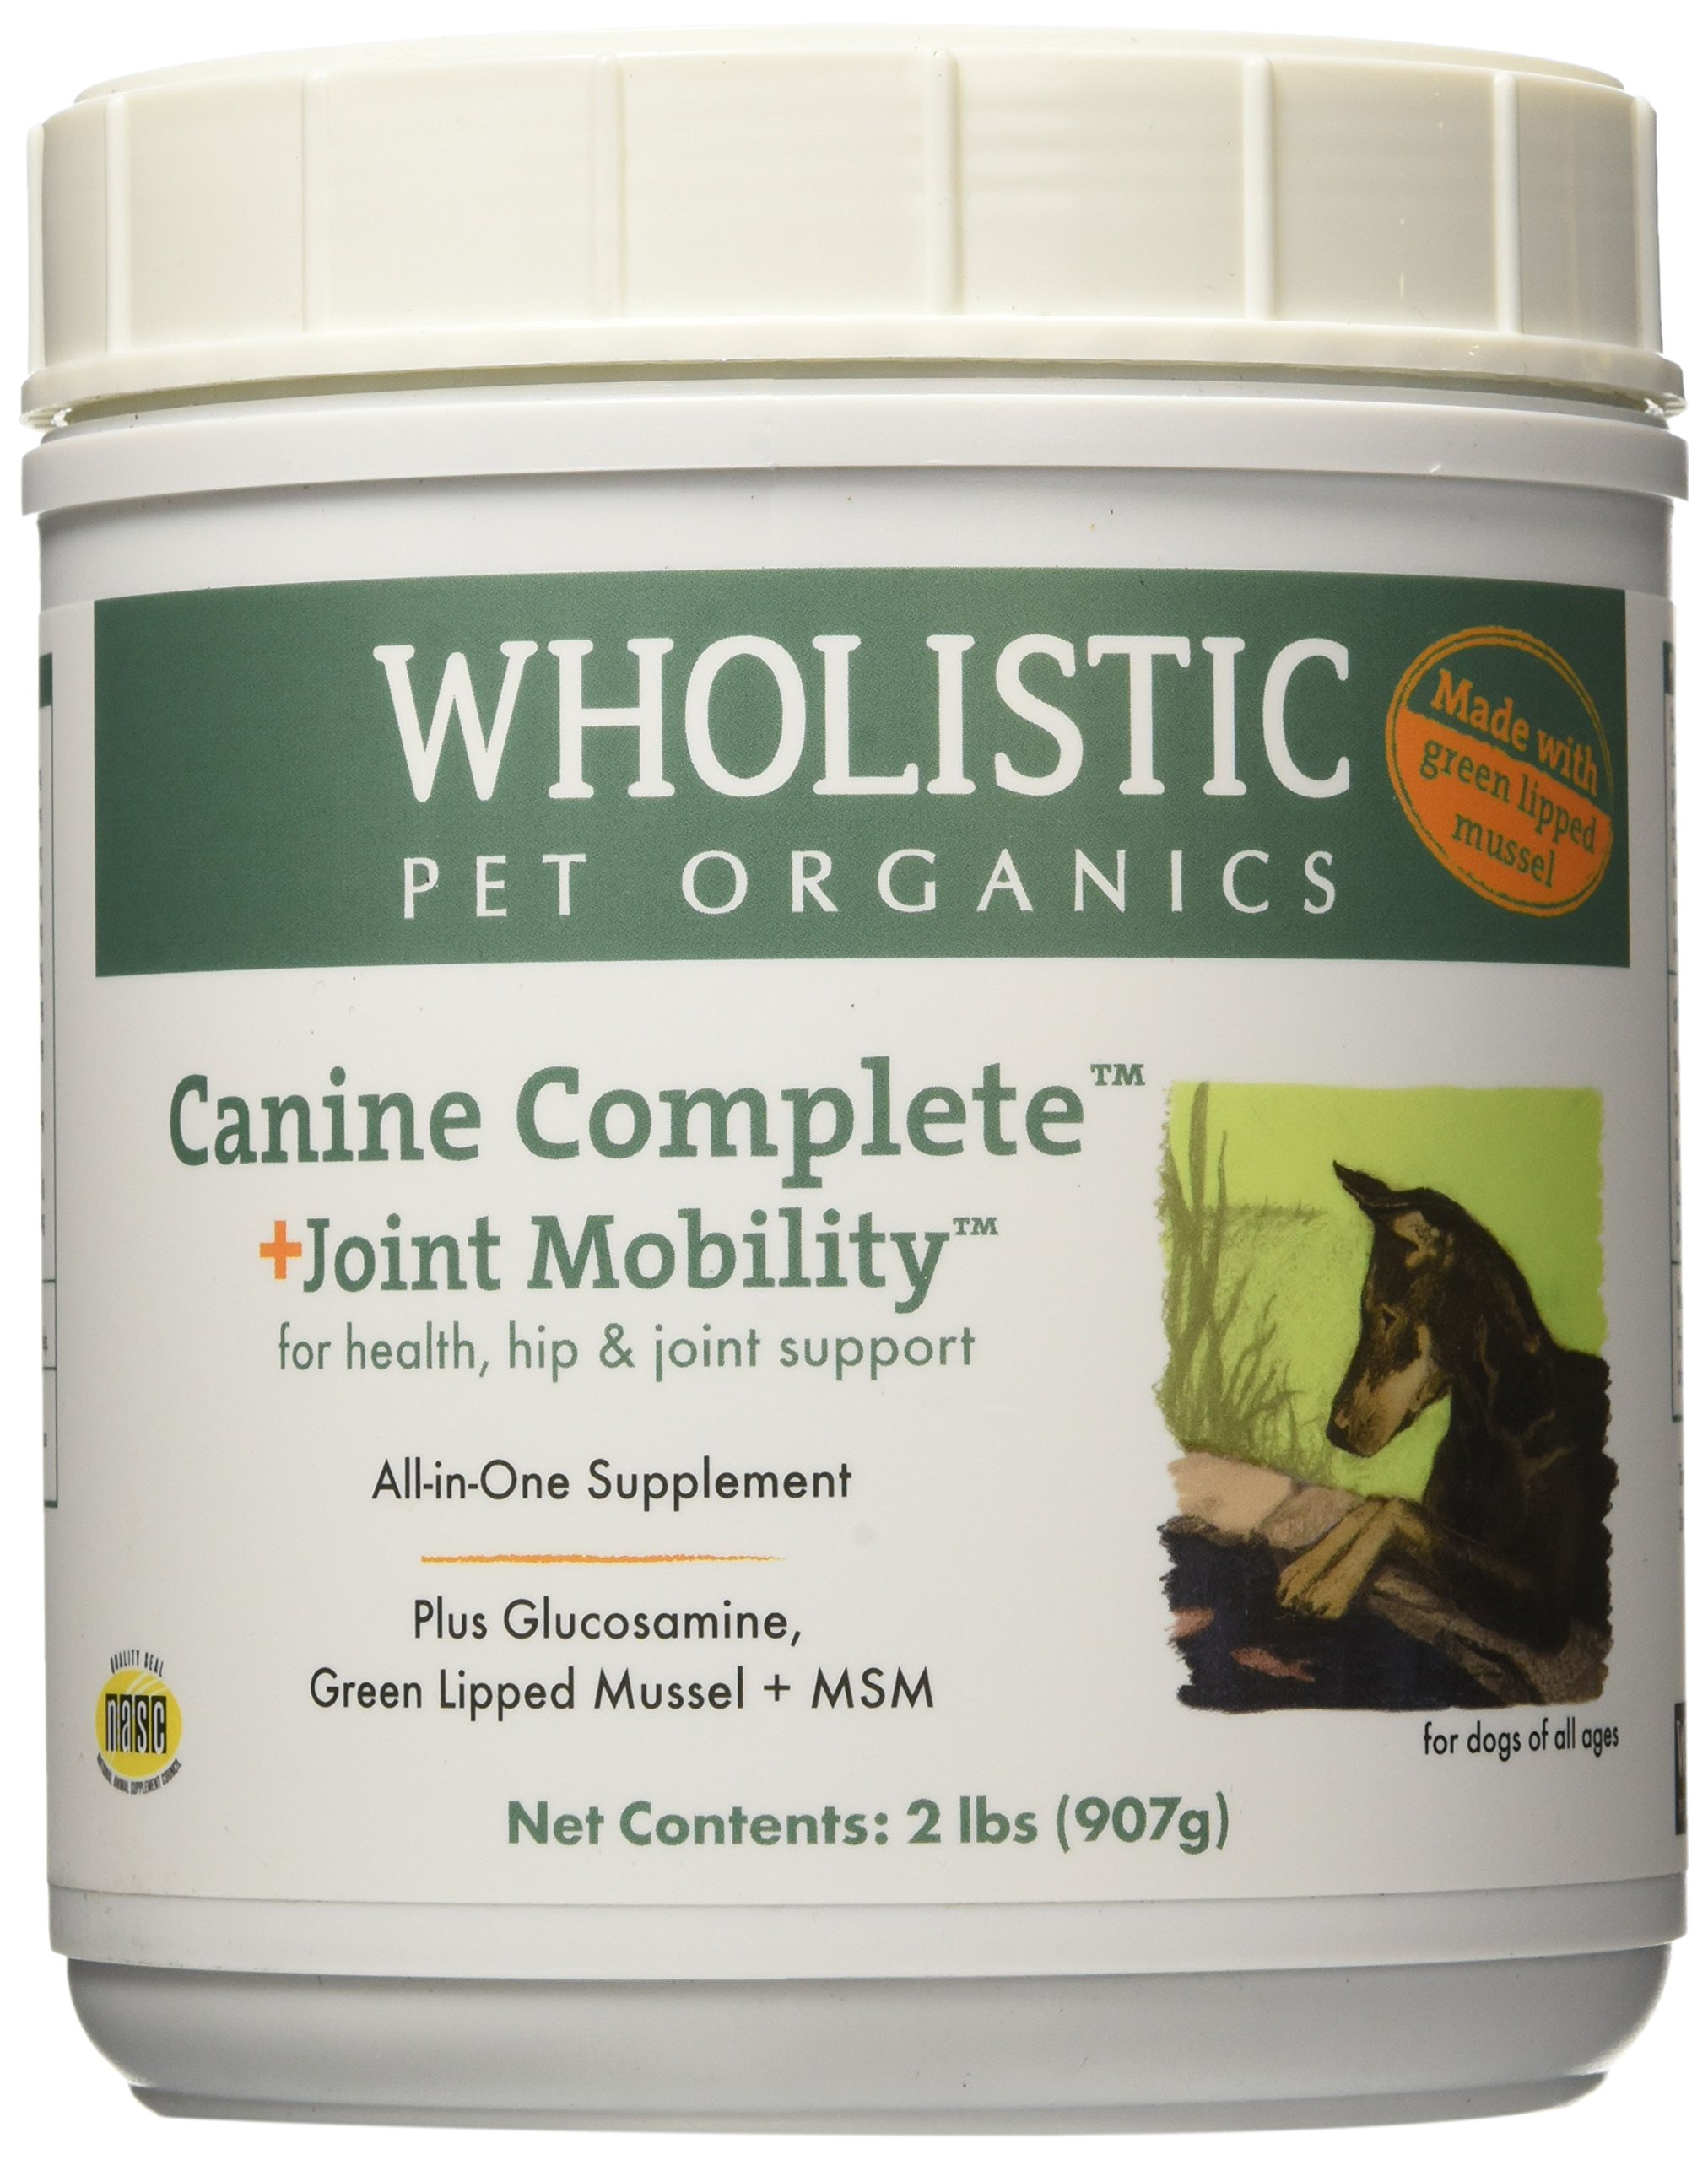 Wholistic Pet Organics Canine Complete Plus Joint Mobility with Green Lipped